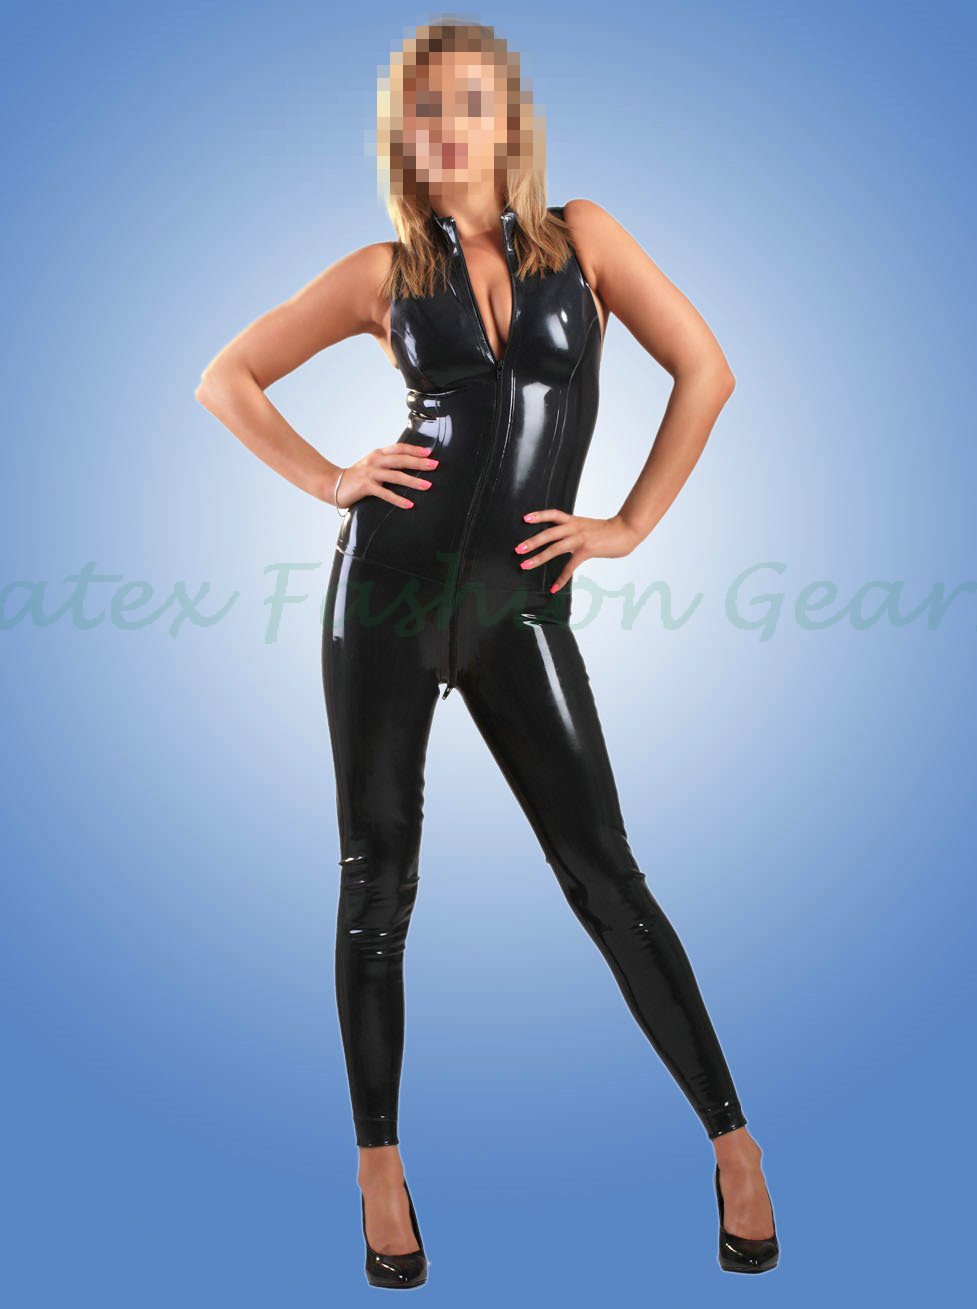 Handmade 0.4MM Thickness Black Rubber Catsuit Sleeveless Fetish Latex Vest Bodysuits made to measure